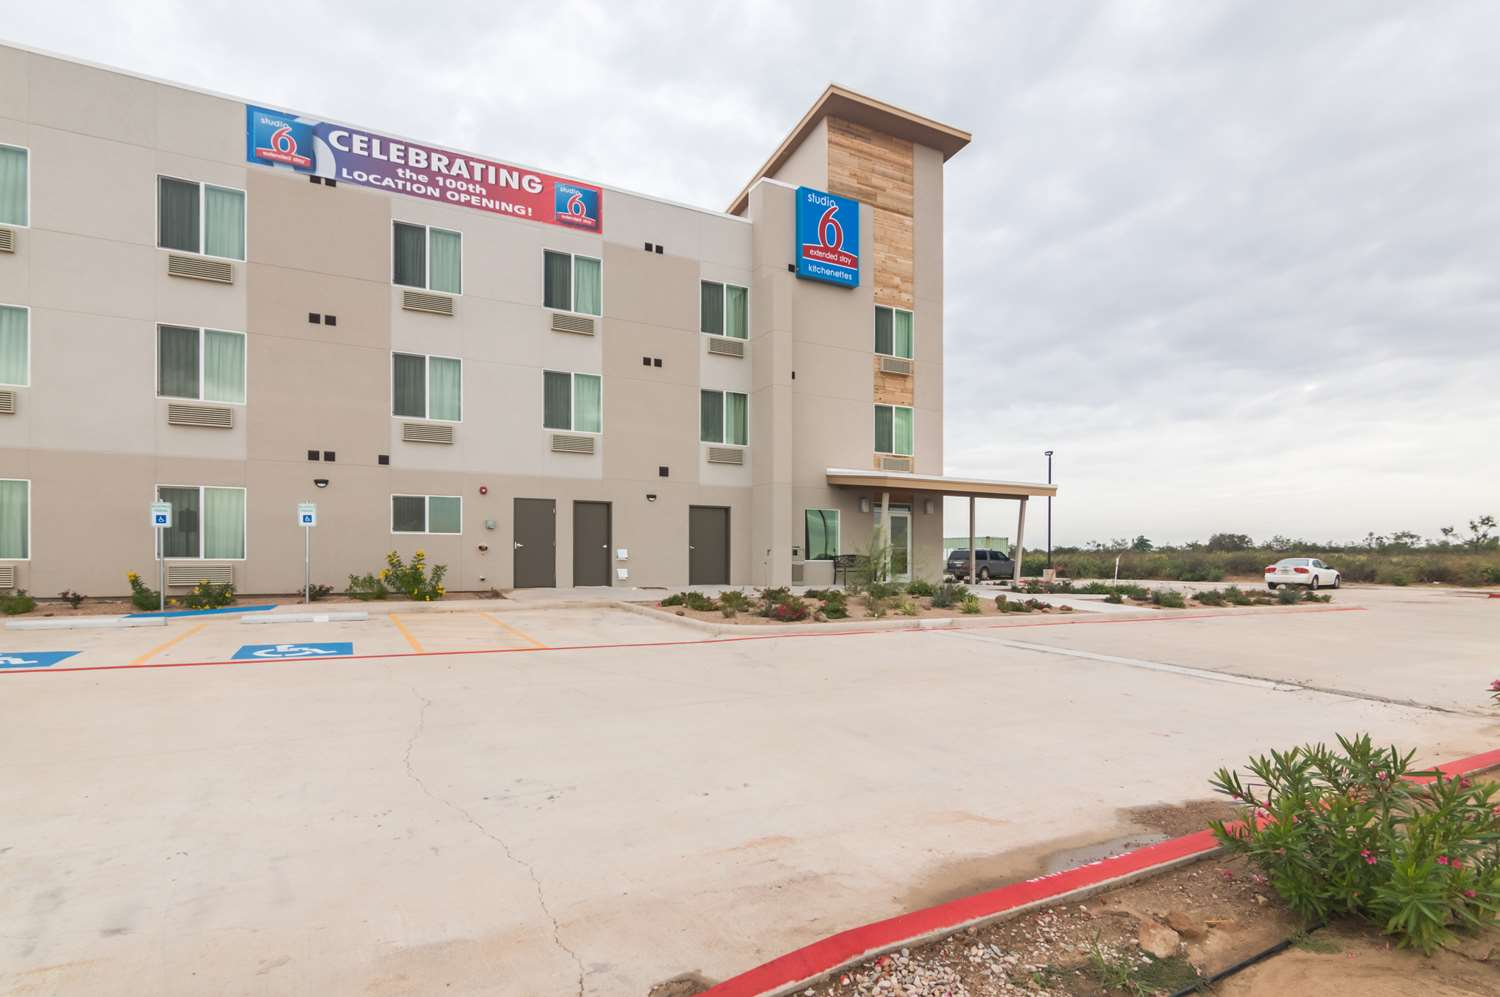 Exterior view - Studio 6 Extended Stay Hotel Colorado City